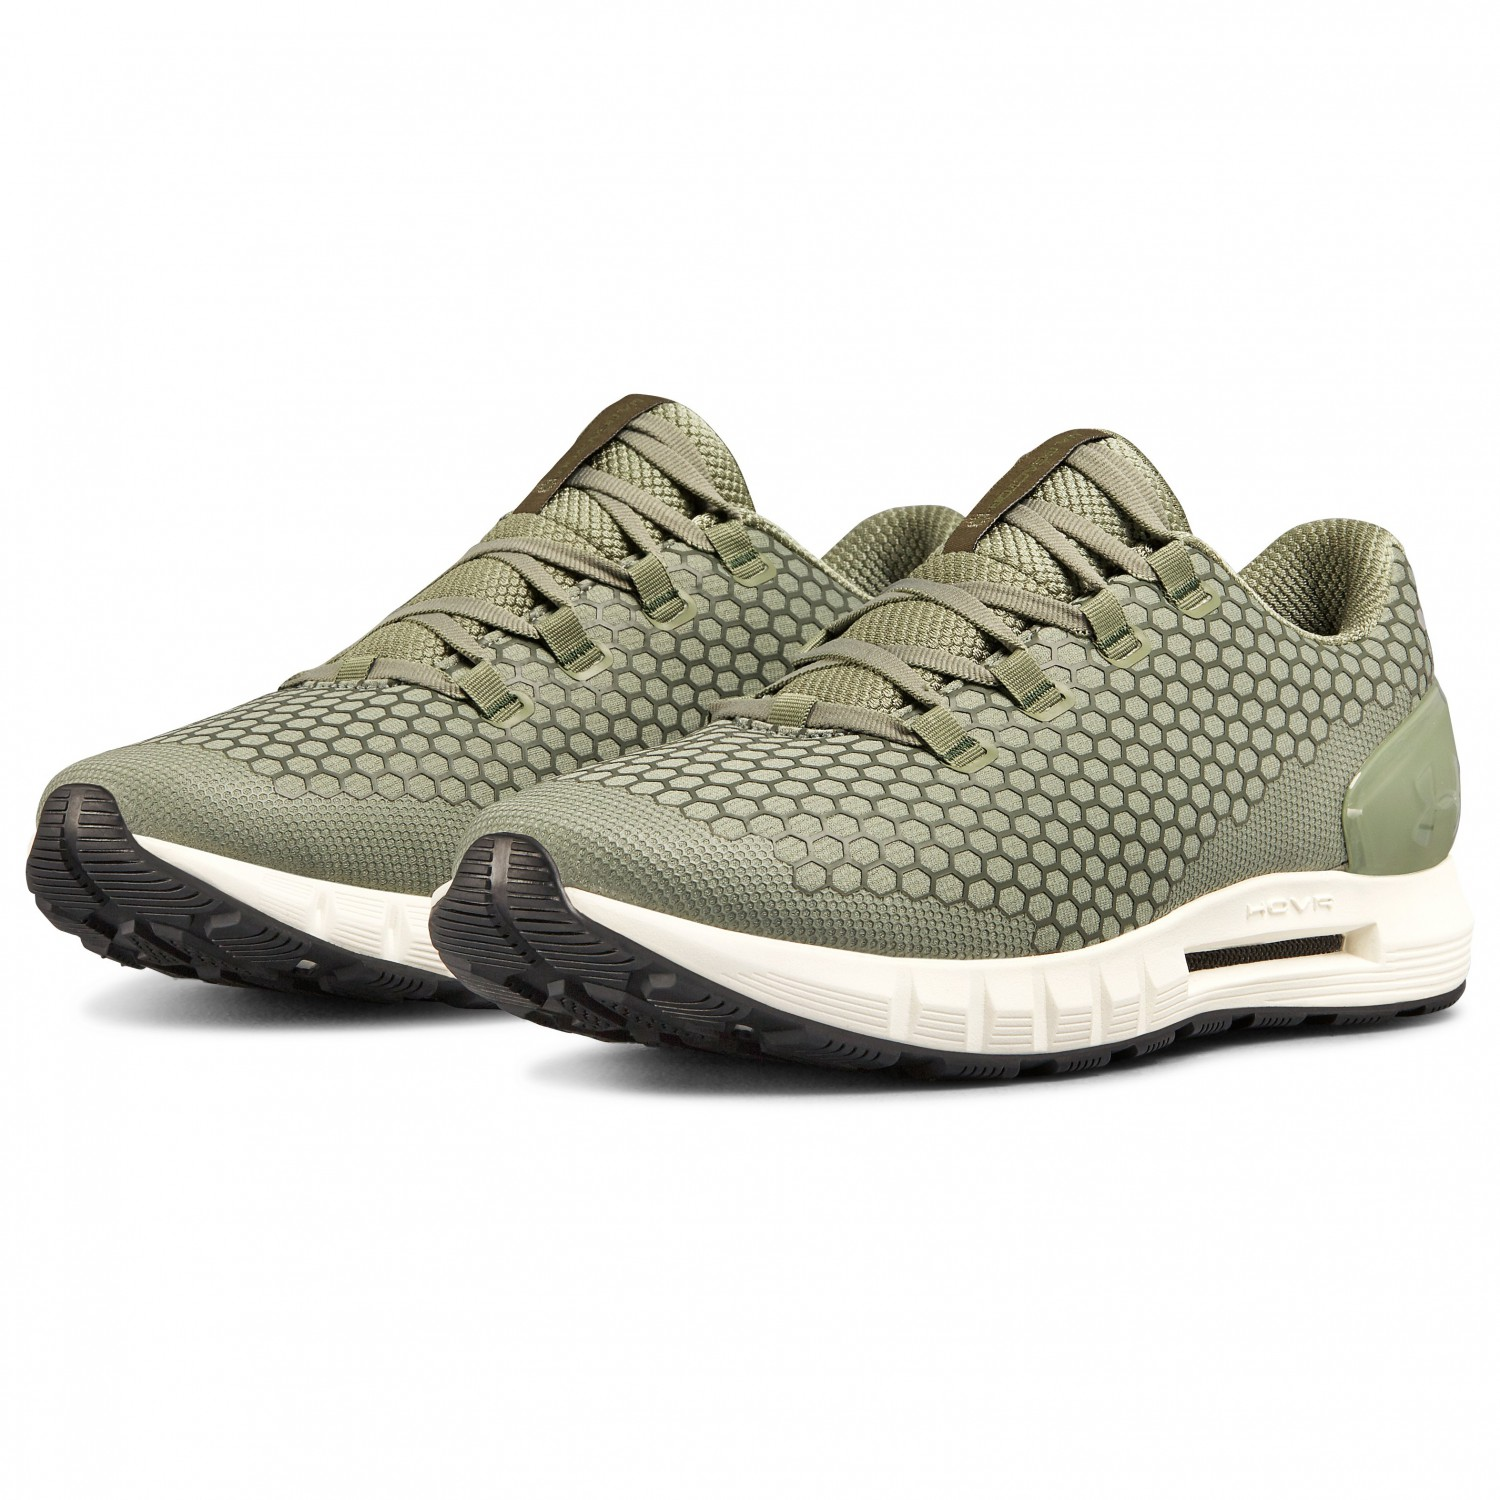 best sneakers 57972 987ea Under Armour - UA HOVR CG Reactor NC - Running shoes - Moss Green / Ivory /  Moss Green | 10,5 (US)